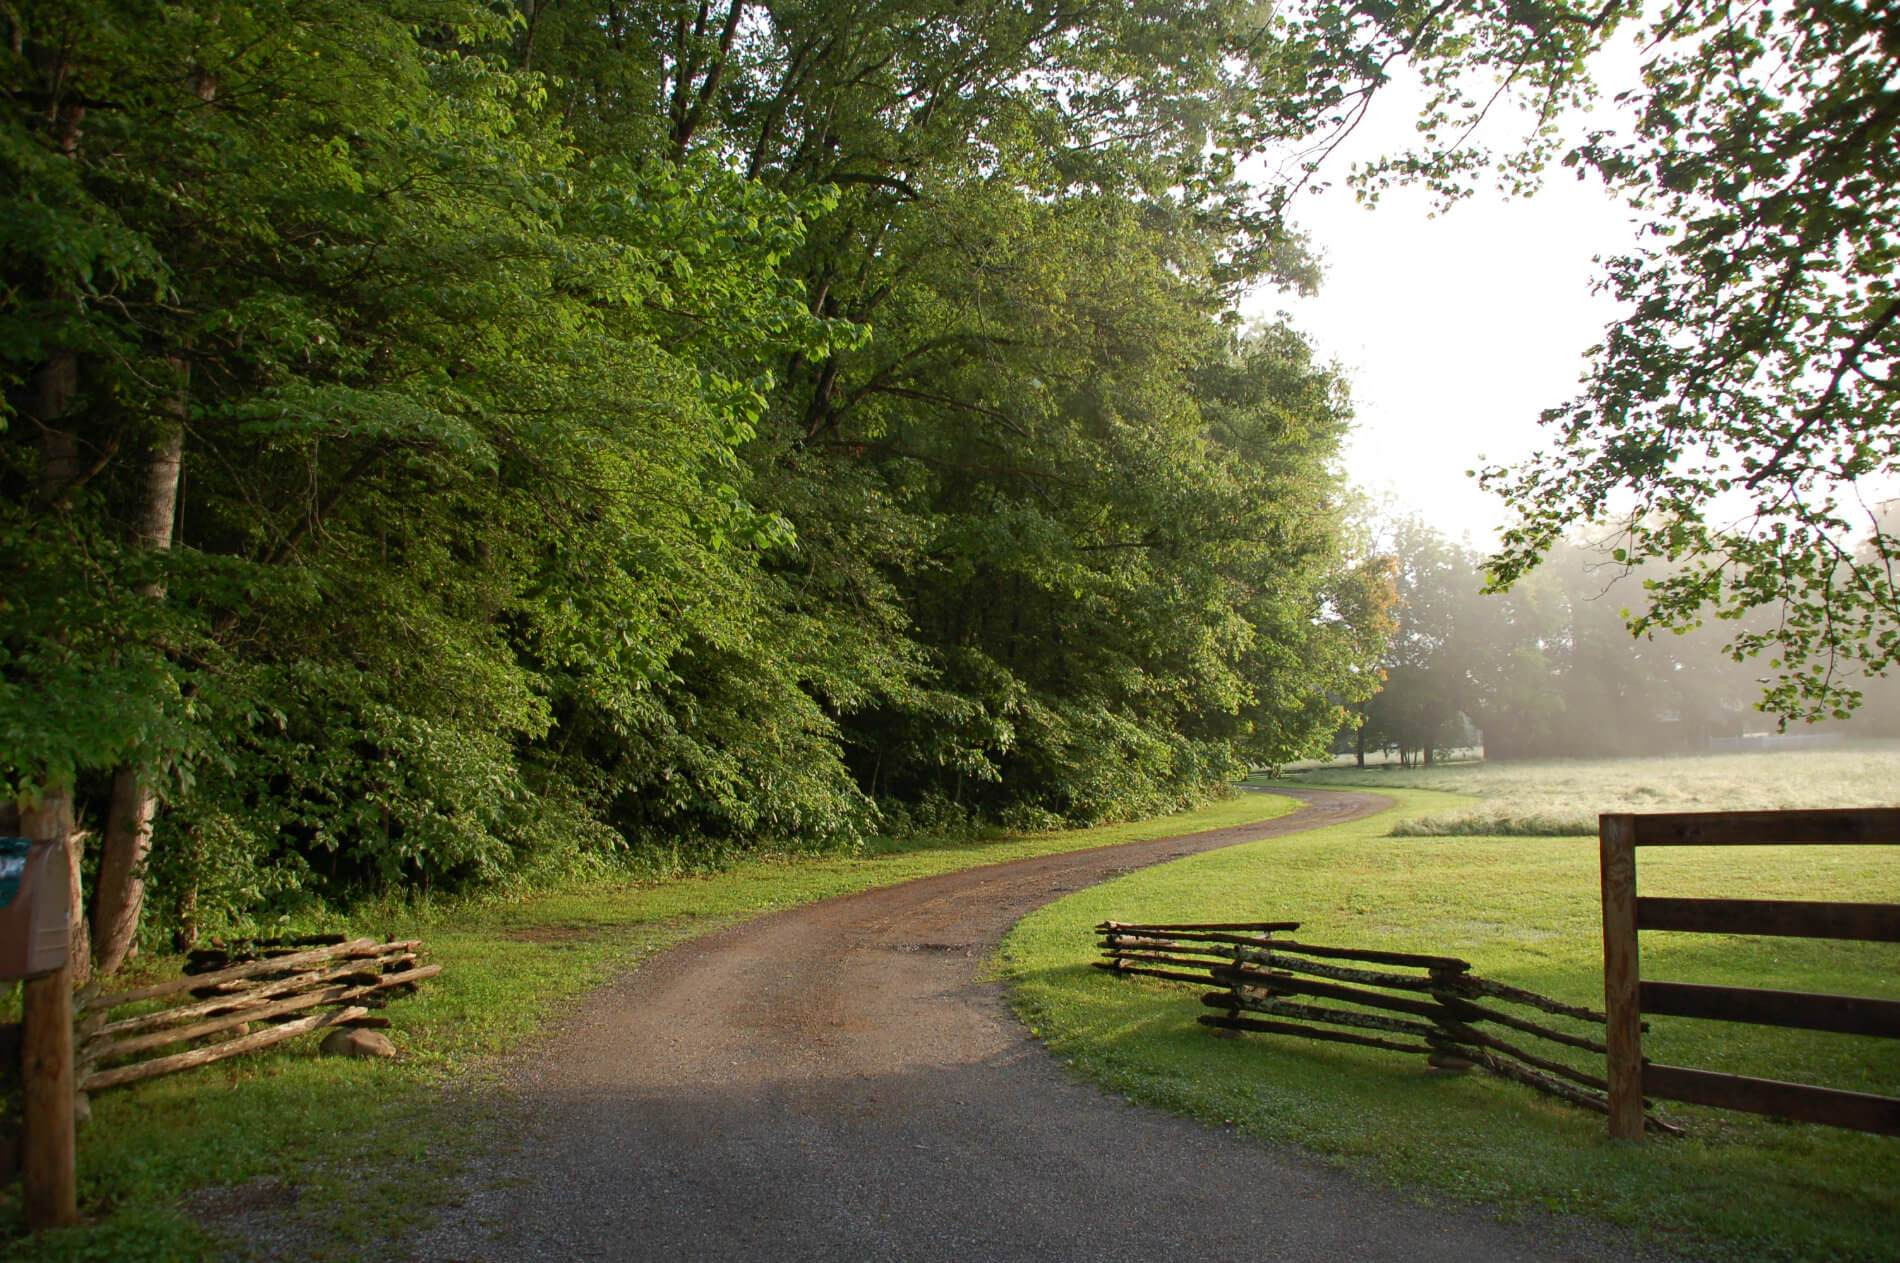 Picture of winding dirt road with green grass and trees on the left and fencing at the entrance.